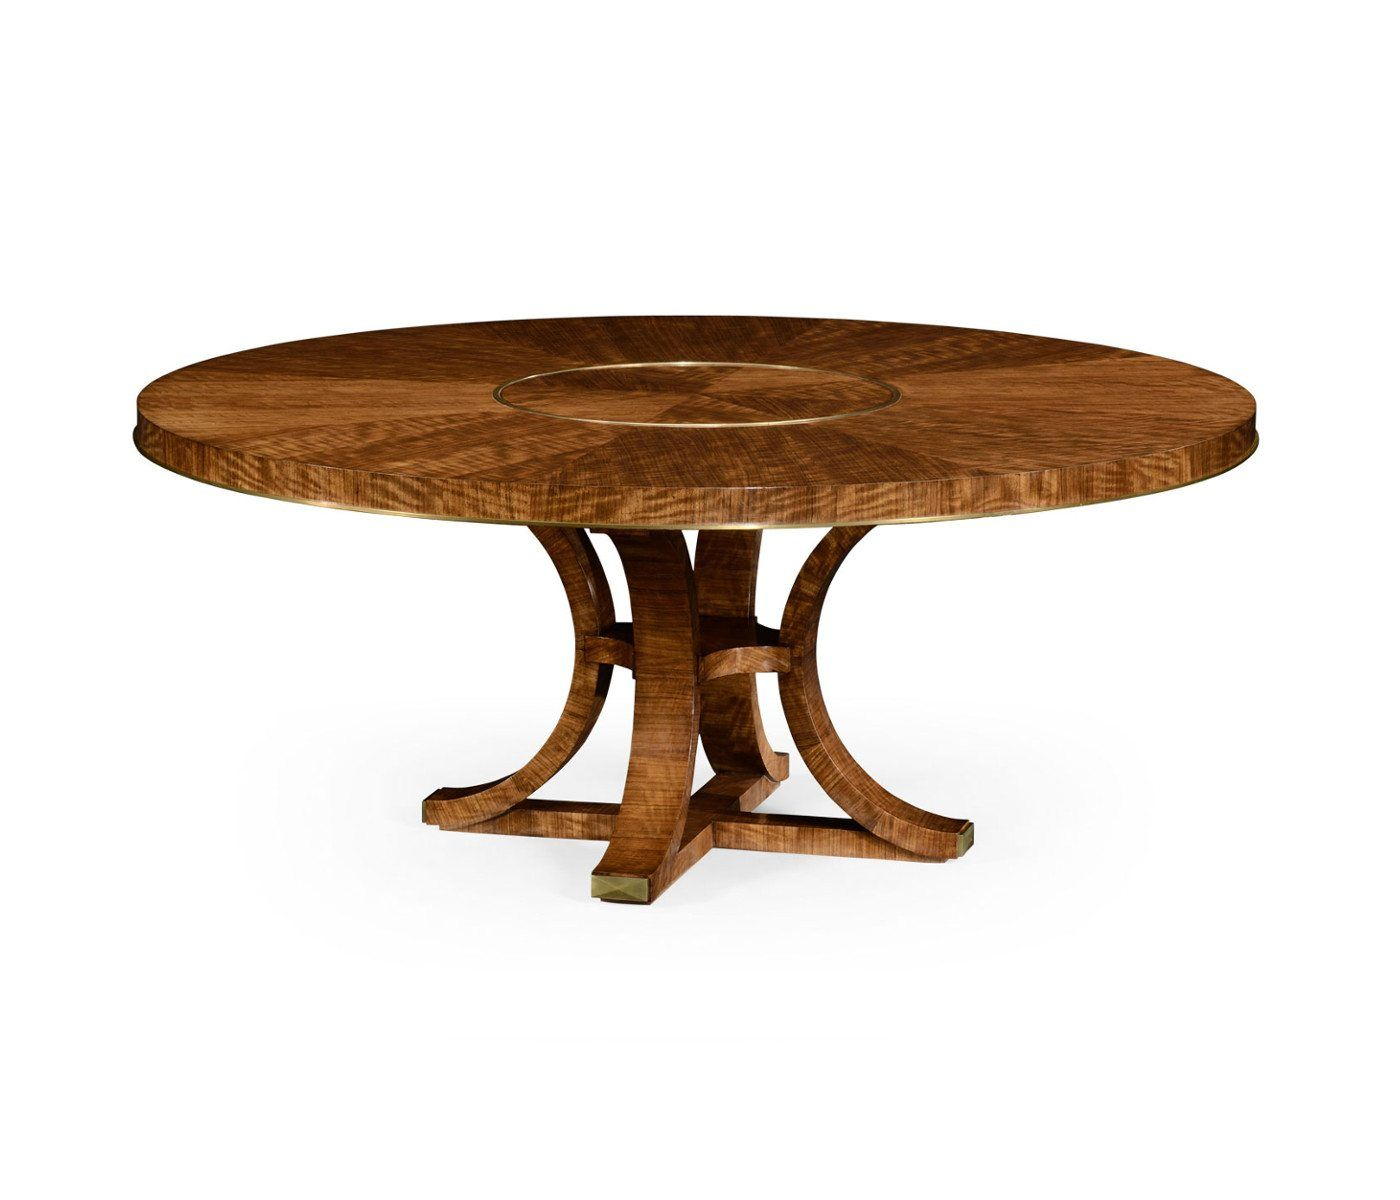 Transitional 72 Inch Round Dining Table With Built In Lazy Susan In